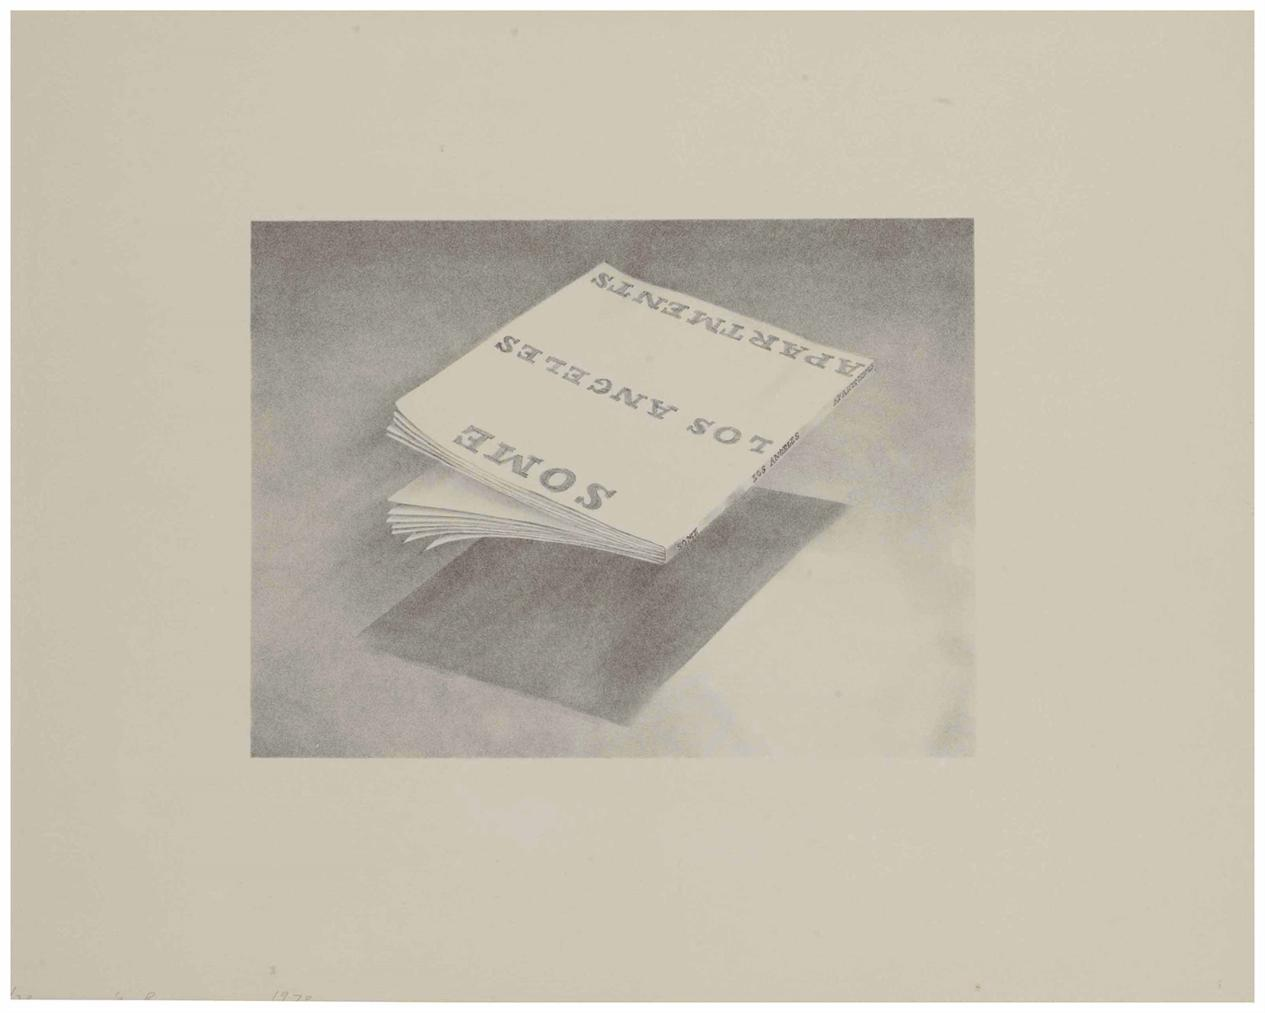 Ed Ruscha-Some Los Angeles Apartments, From Book Covers-1970